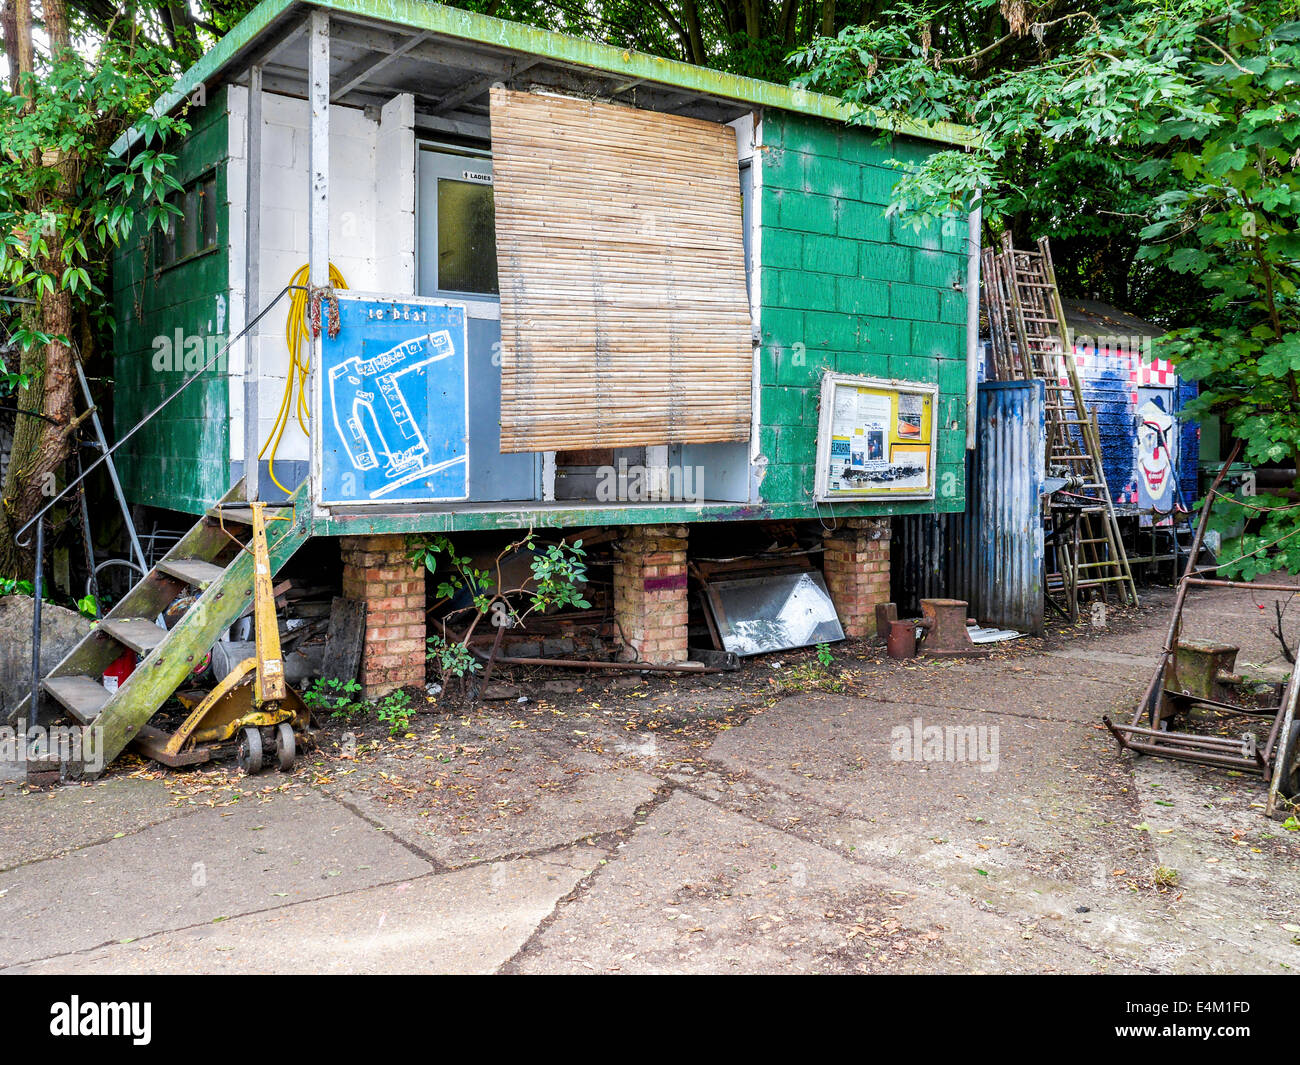 Quirky Artist's studio with colorful exterior and map of the yard in the working Boatyard on Eel Pi Island, - Stock Image